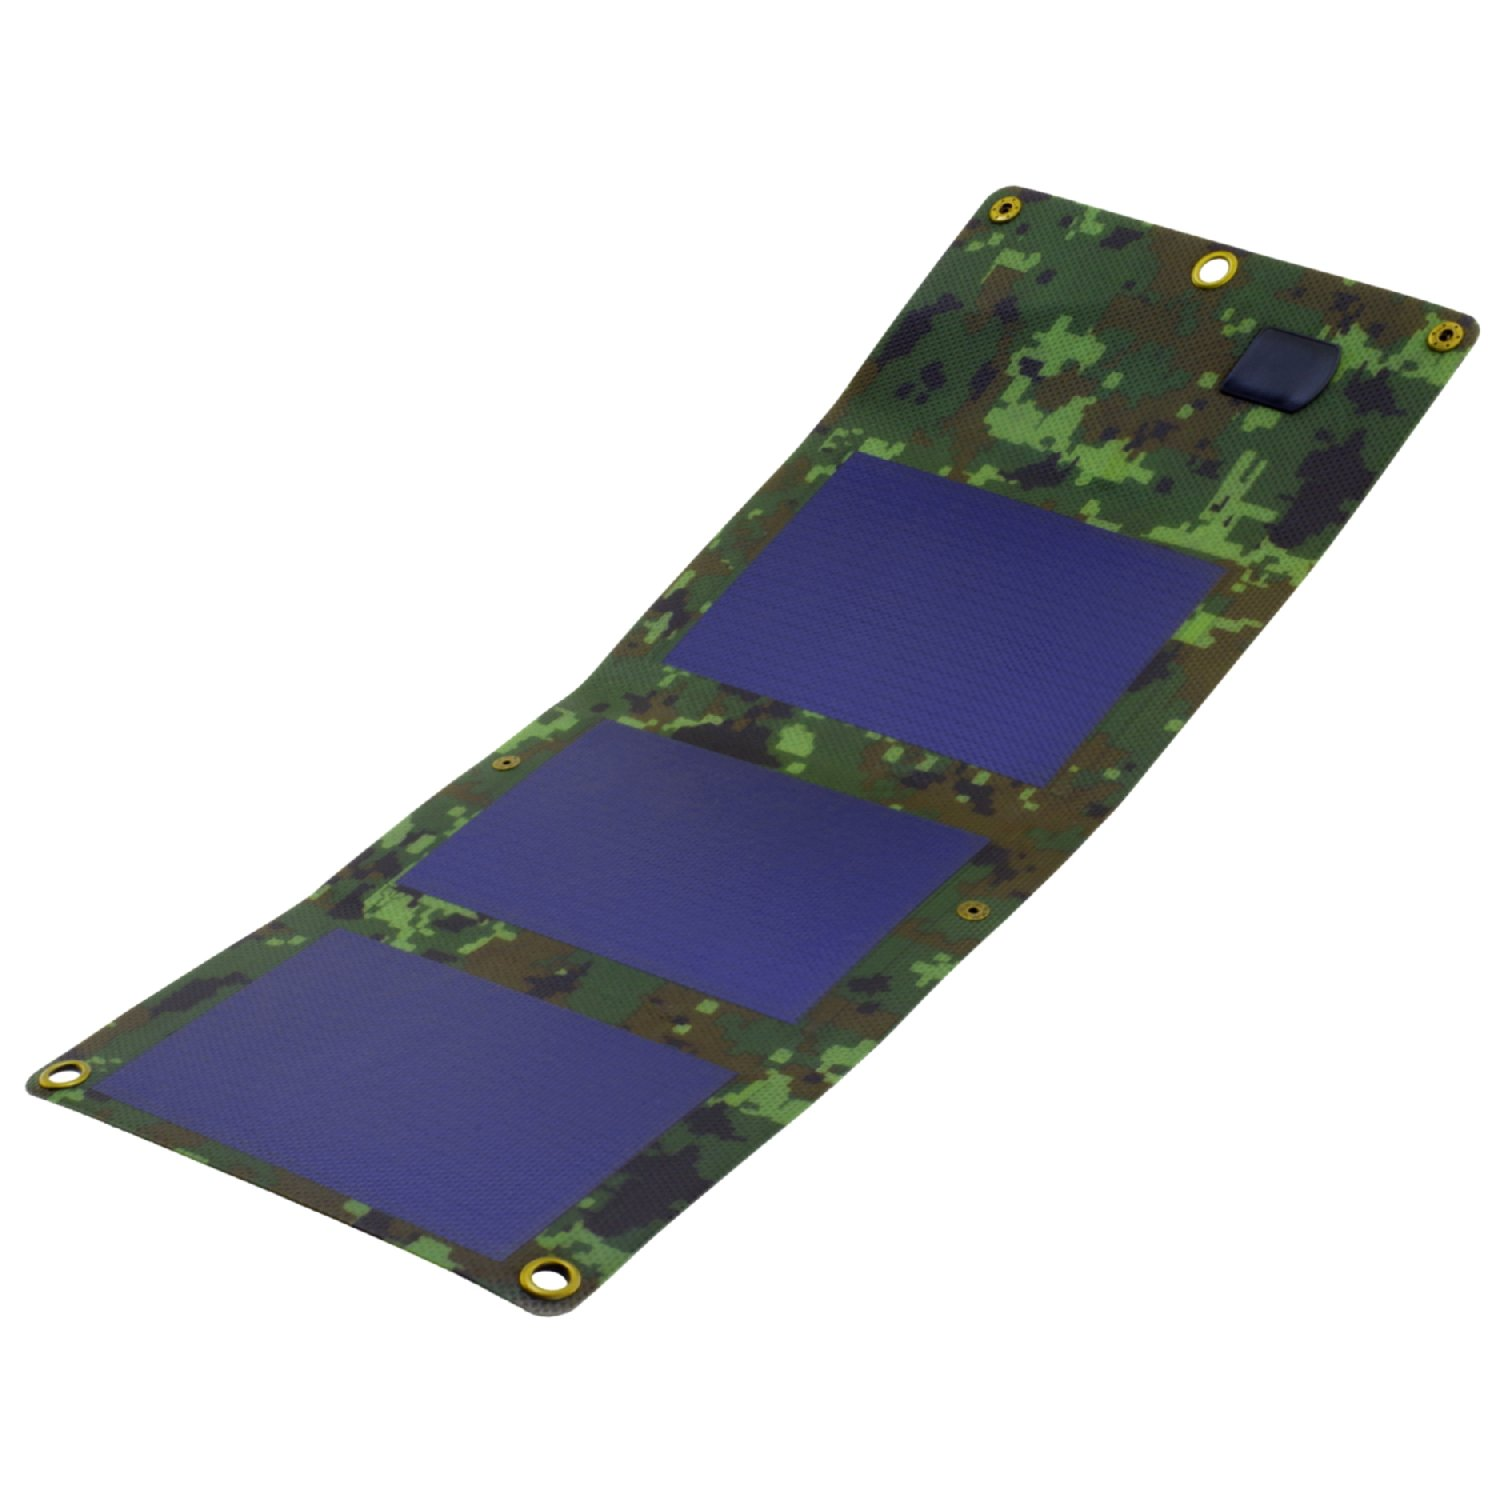 PowerNeed Sunen Solar charger 3W - USB 5V, 630mA